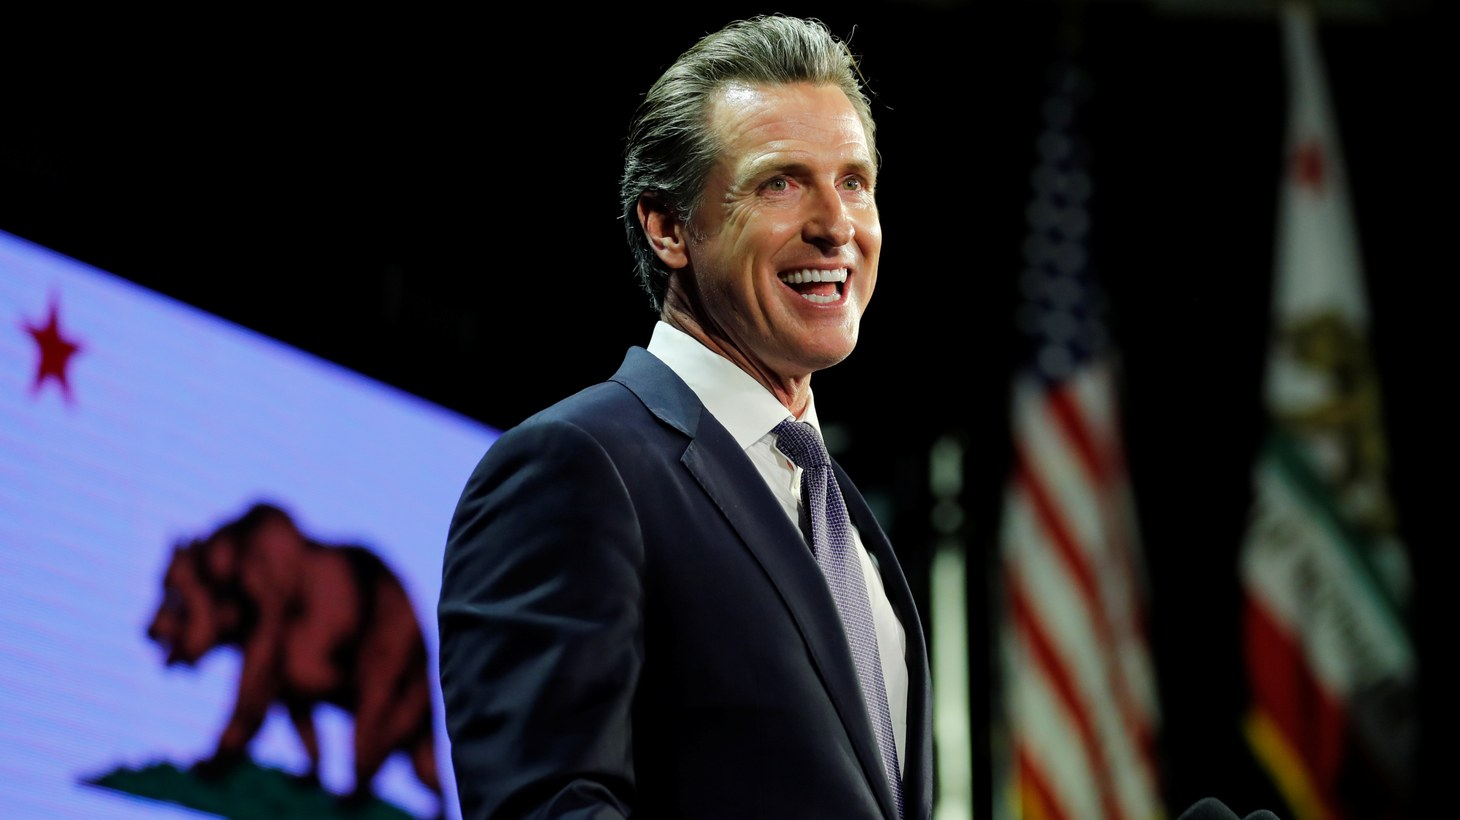 Gavin Newsom speaks after being elected governor of the state during an election night party in Los Angeles, California, U.S. November 6th, 2018.